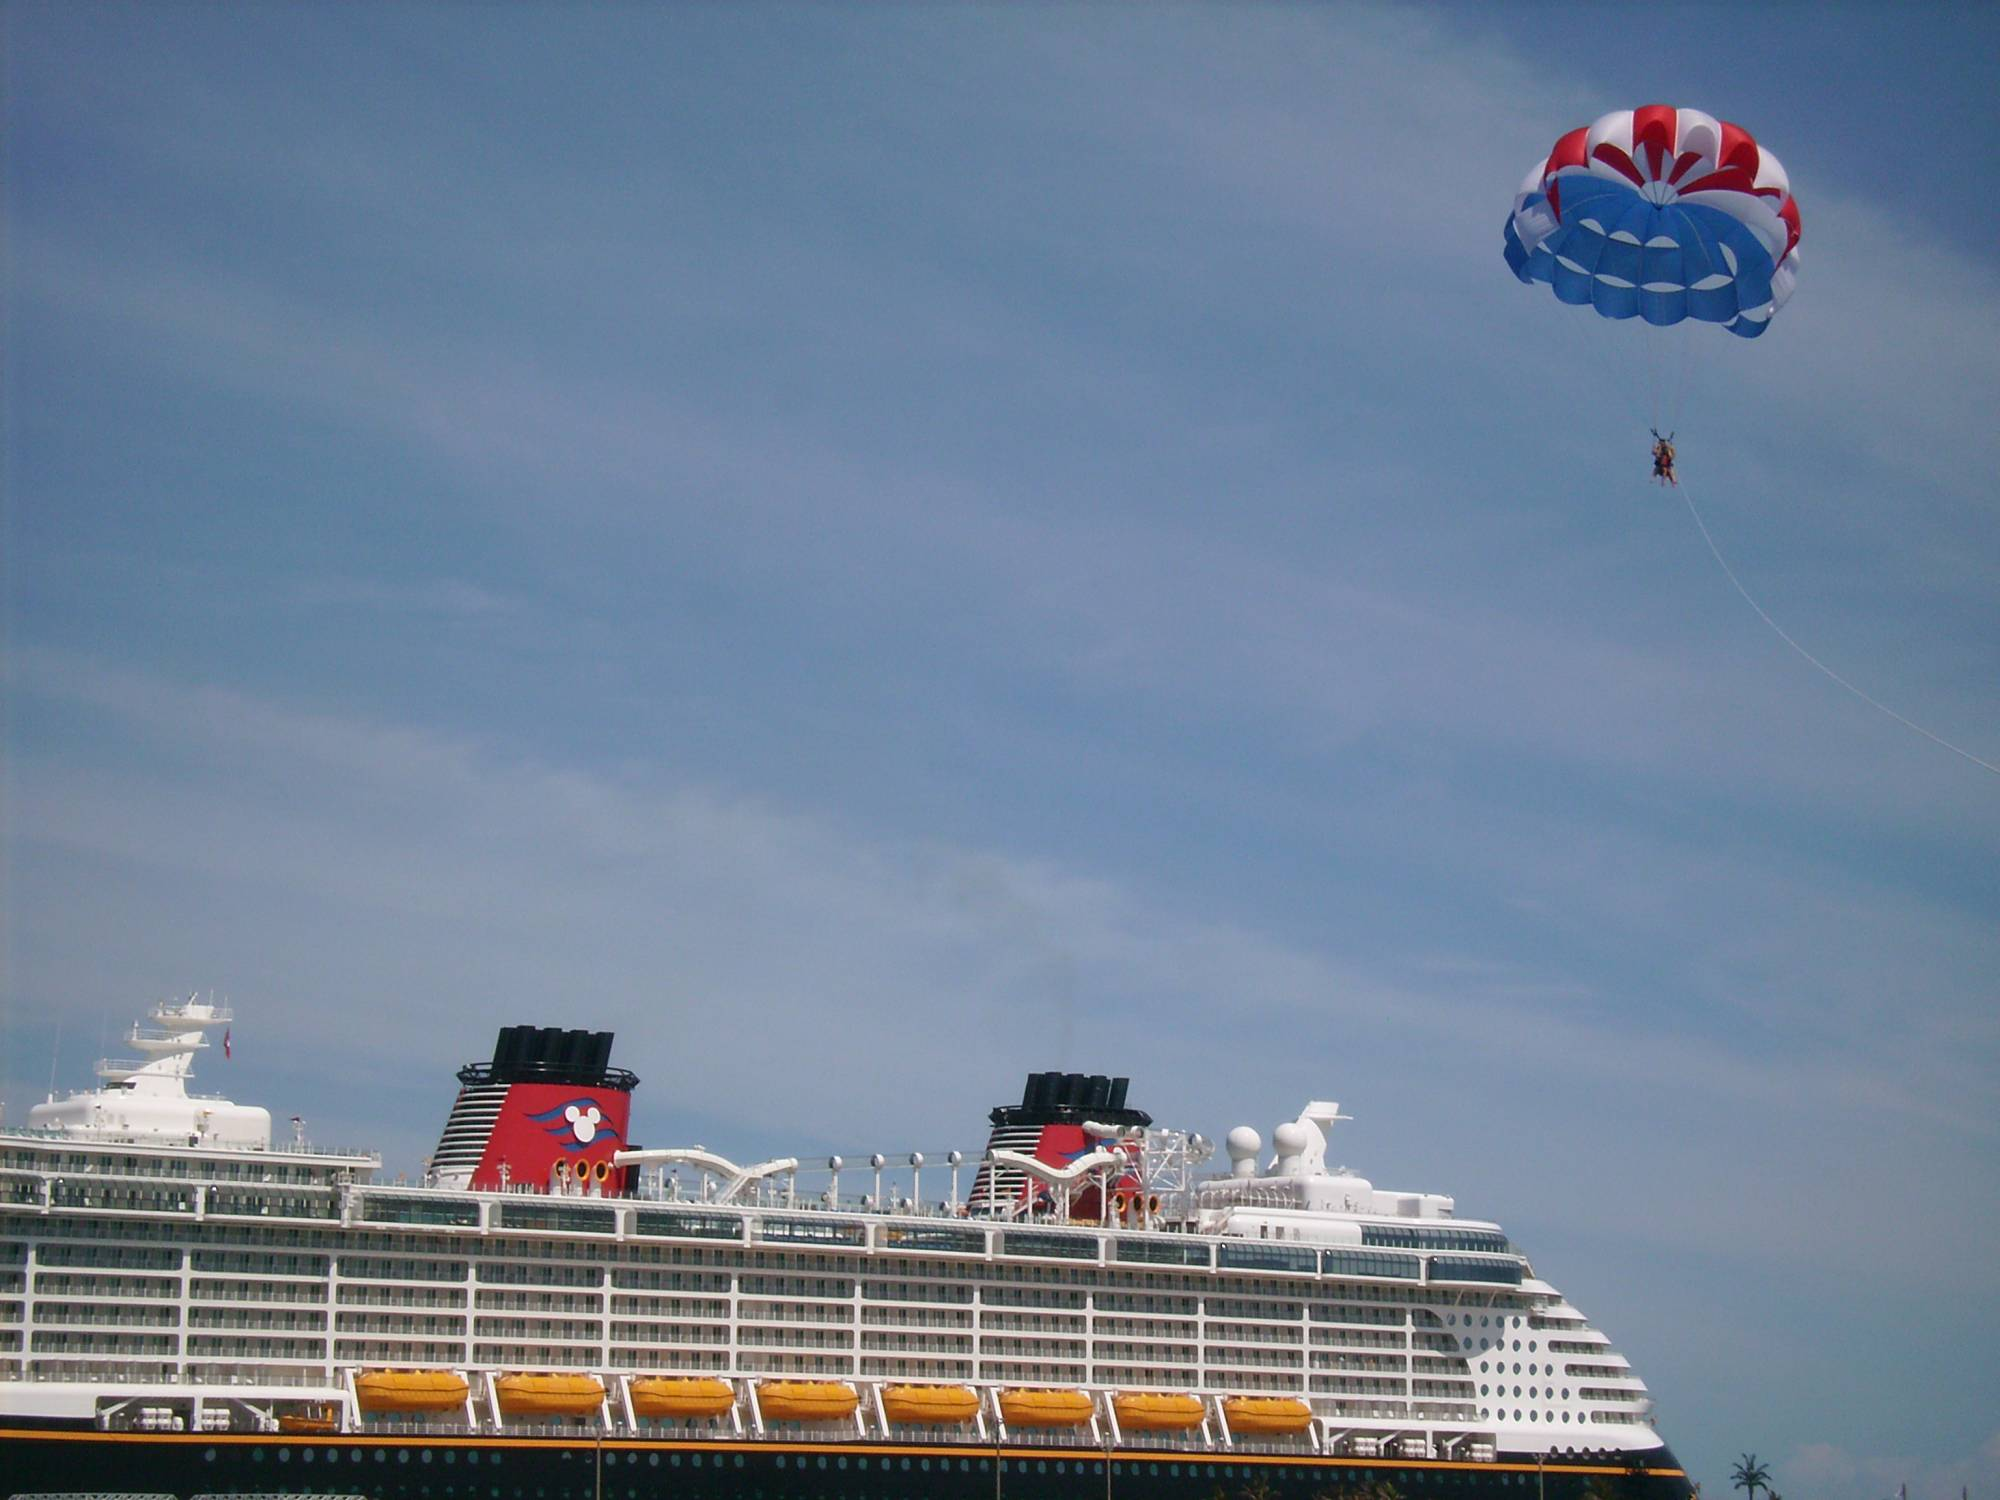 Enjoy a fantastic view of Castaway Cay while Parasailing | PassPorter.com